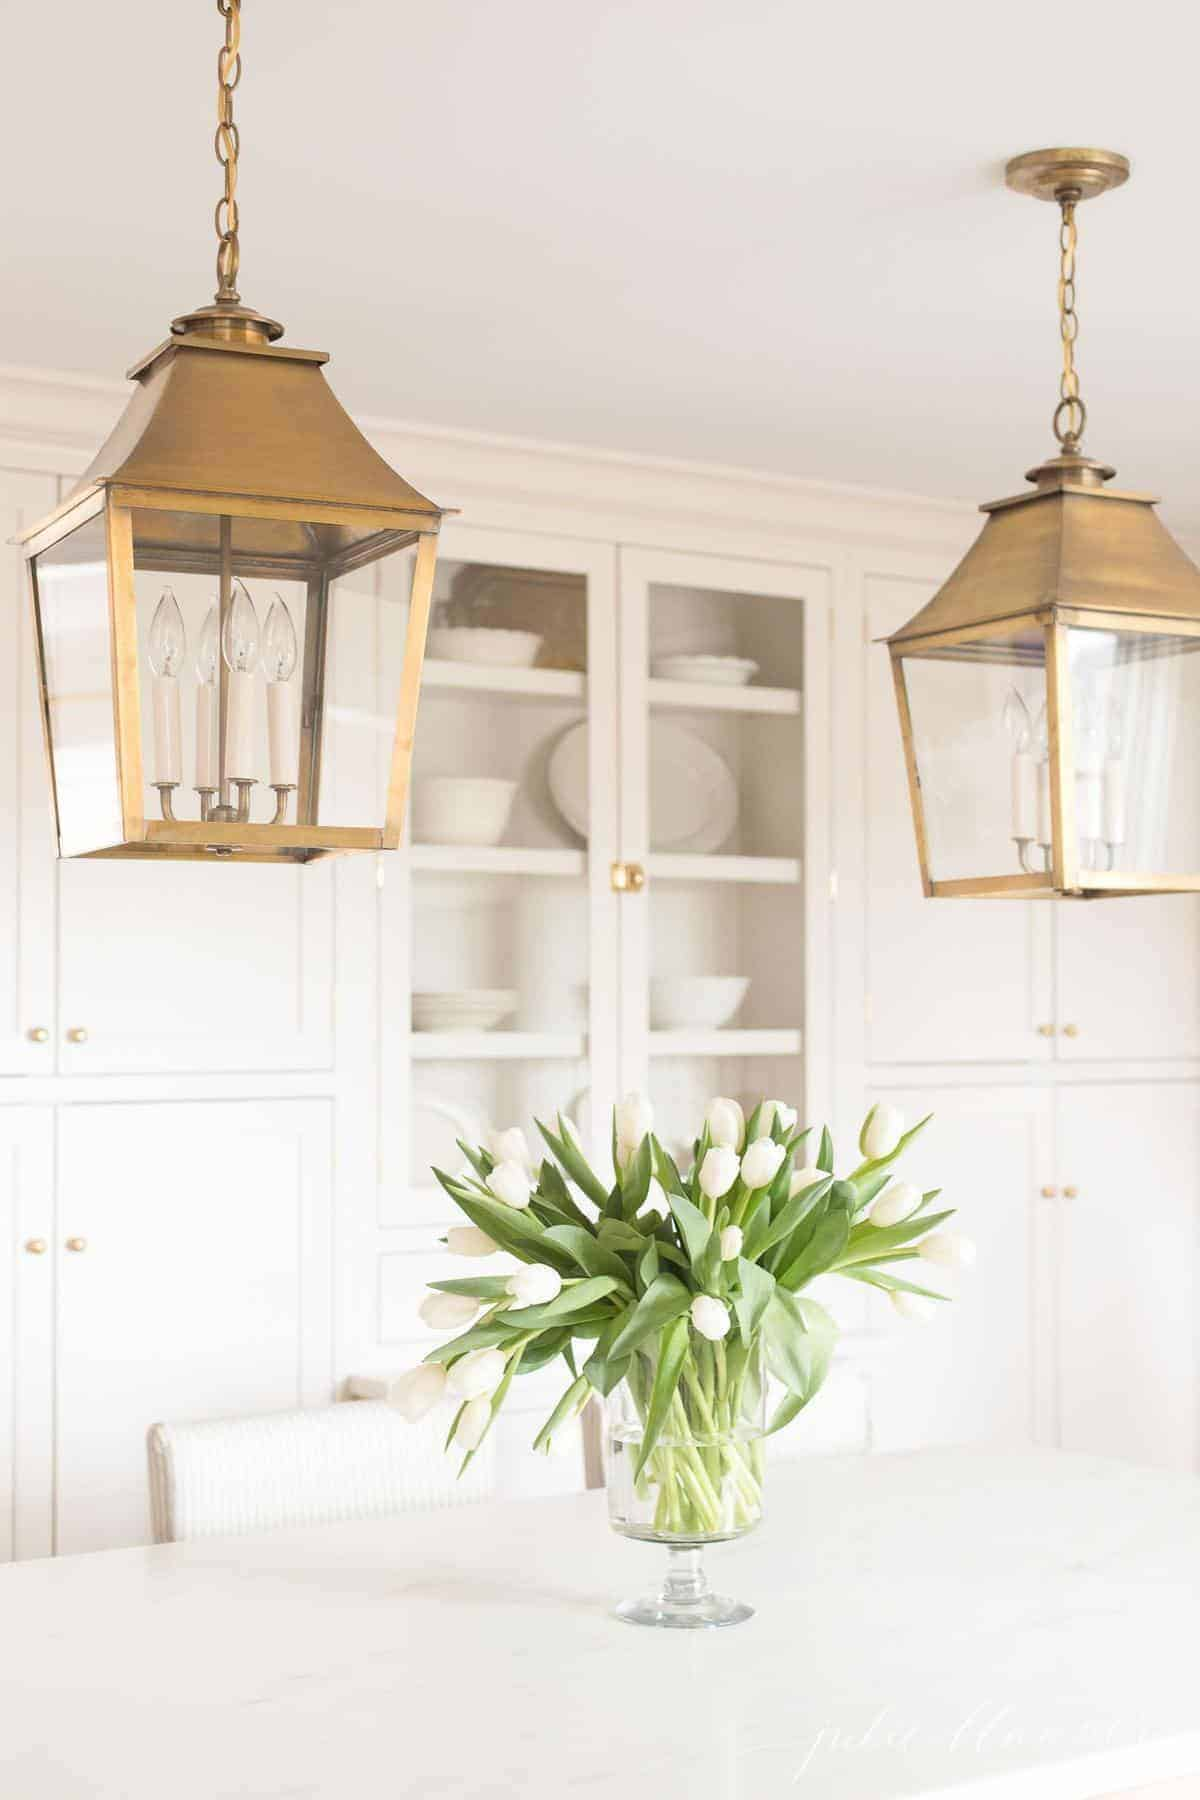 Inset cabinets in a cream kitchen with brass lanterns and a vase of flowers on the island.